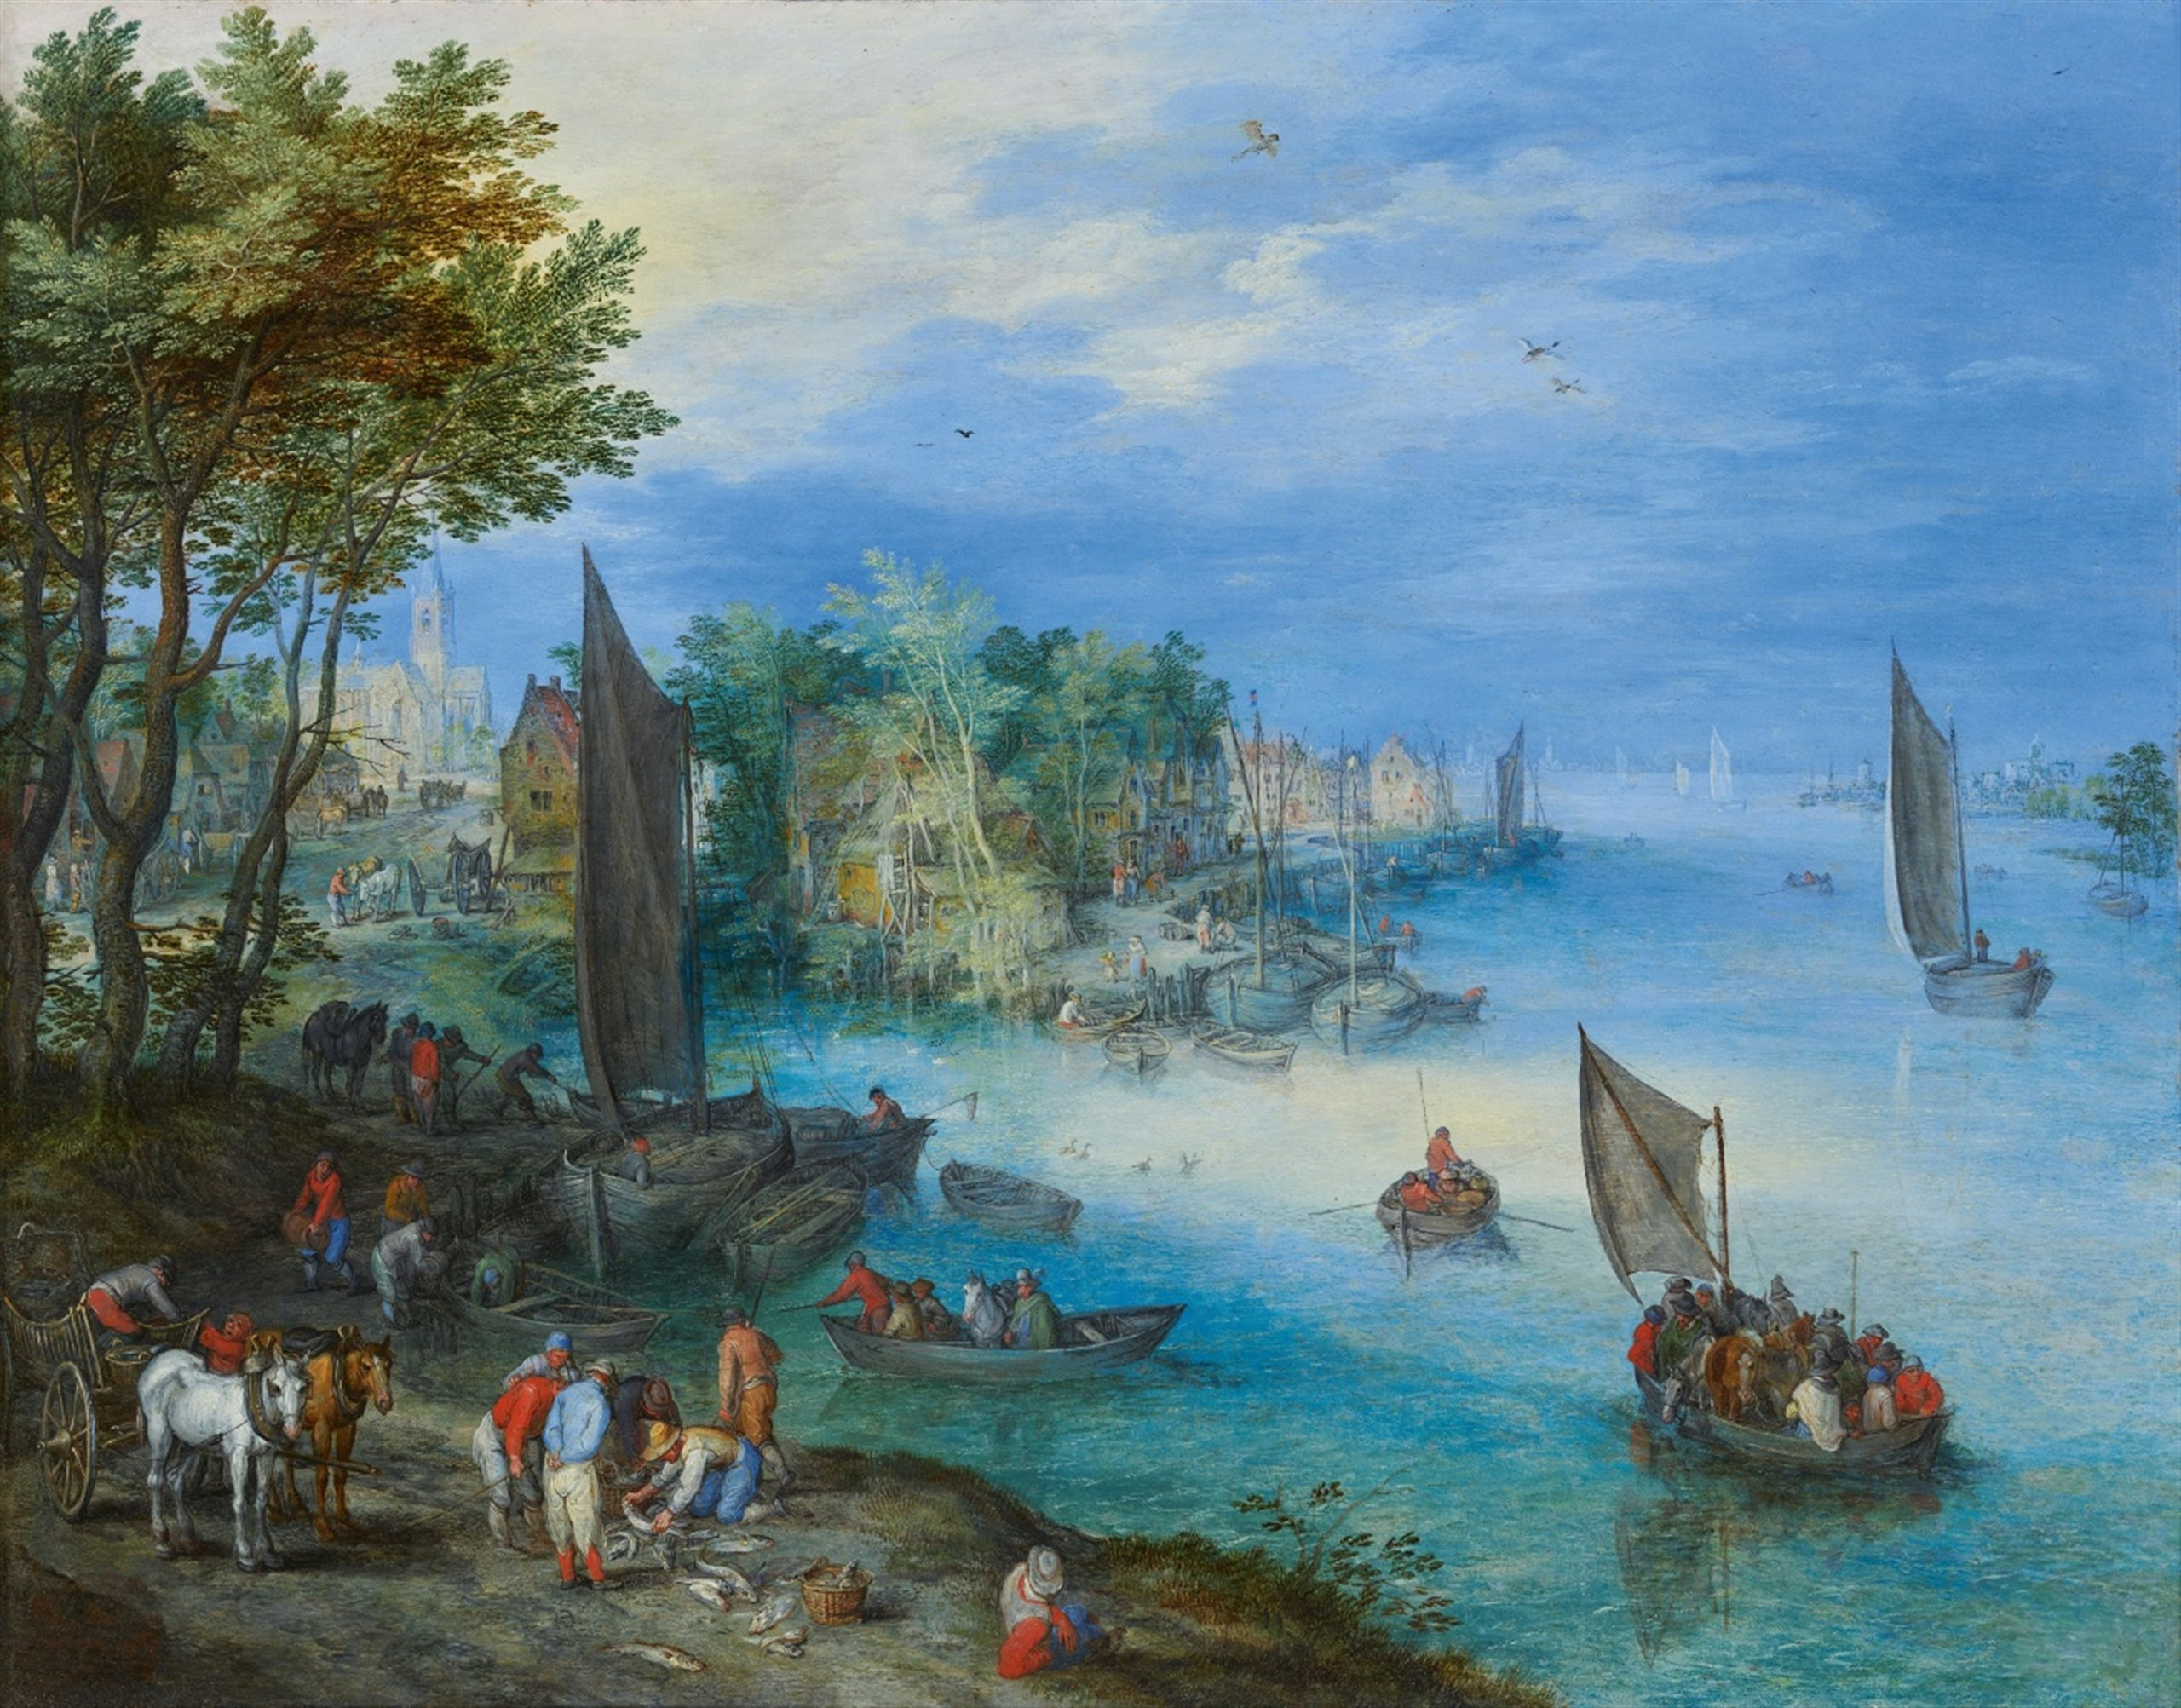 River Landscape with Fishers and a Cart, by Jan Brueghel the Elder - 2560px